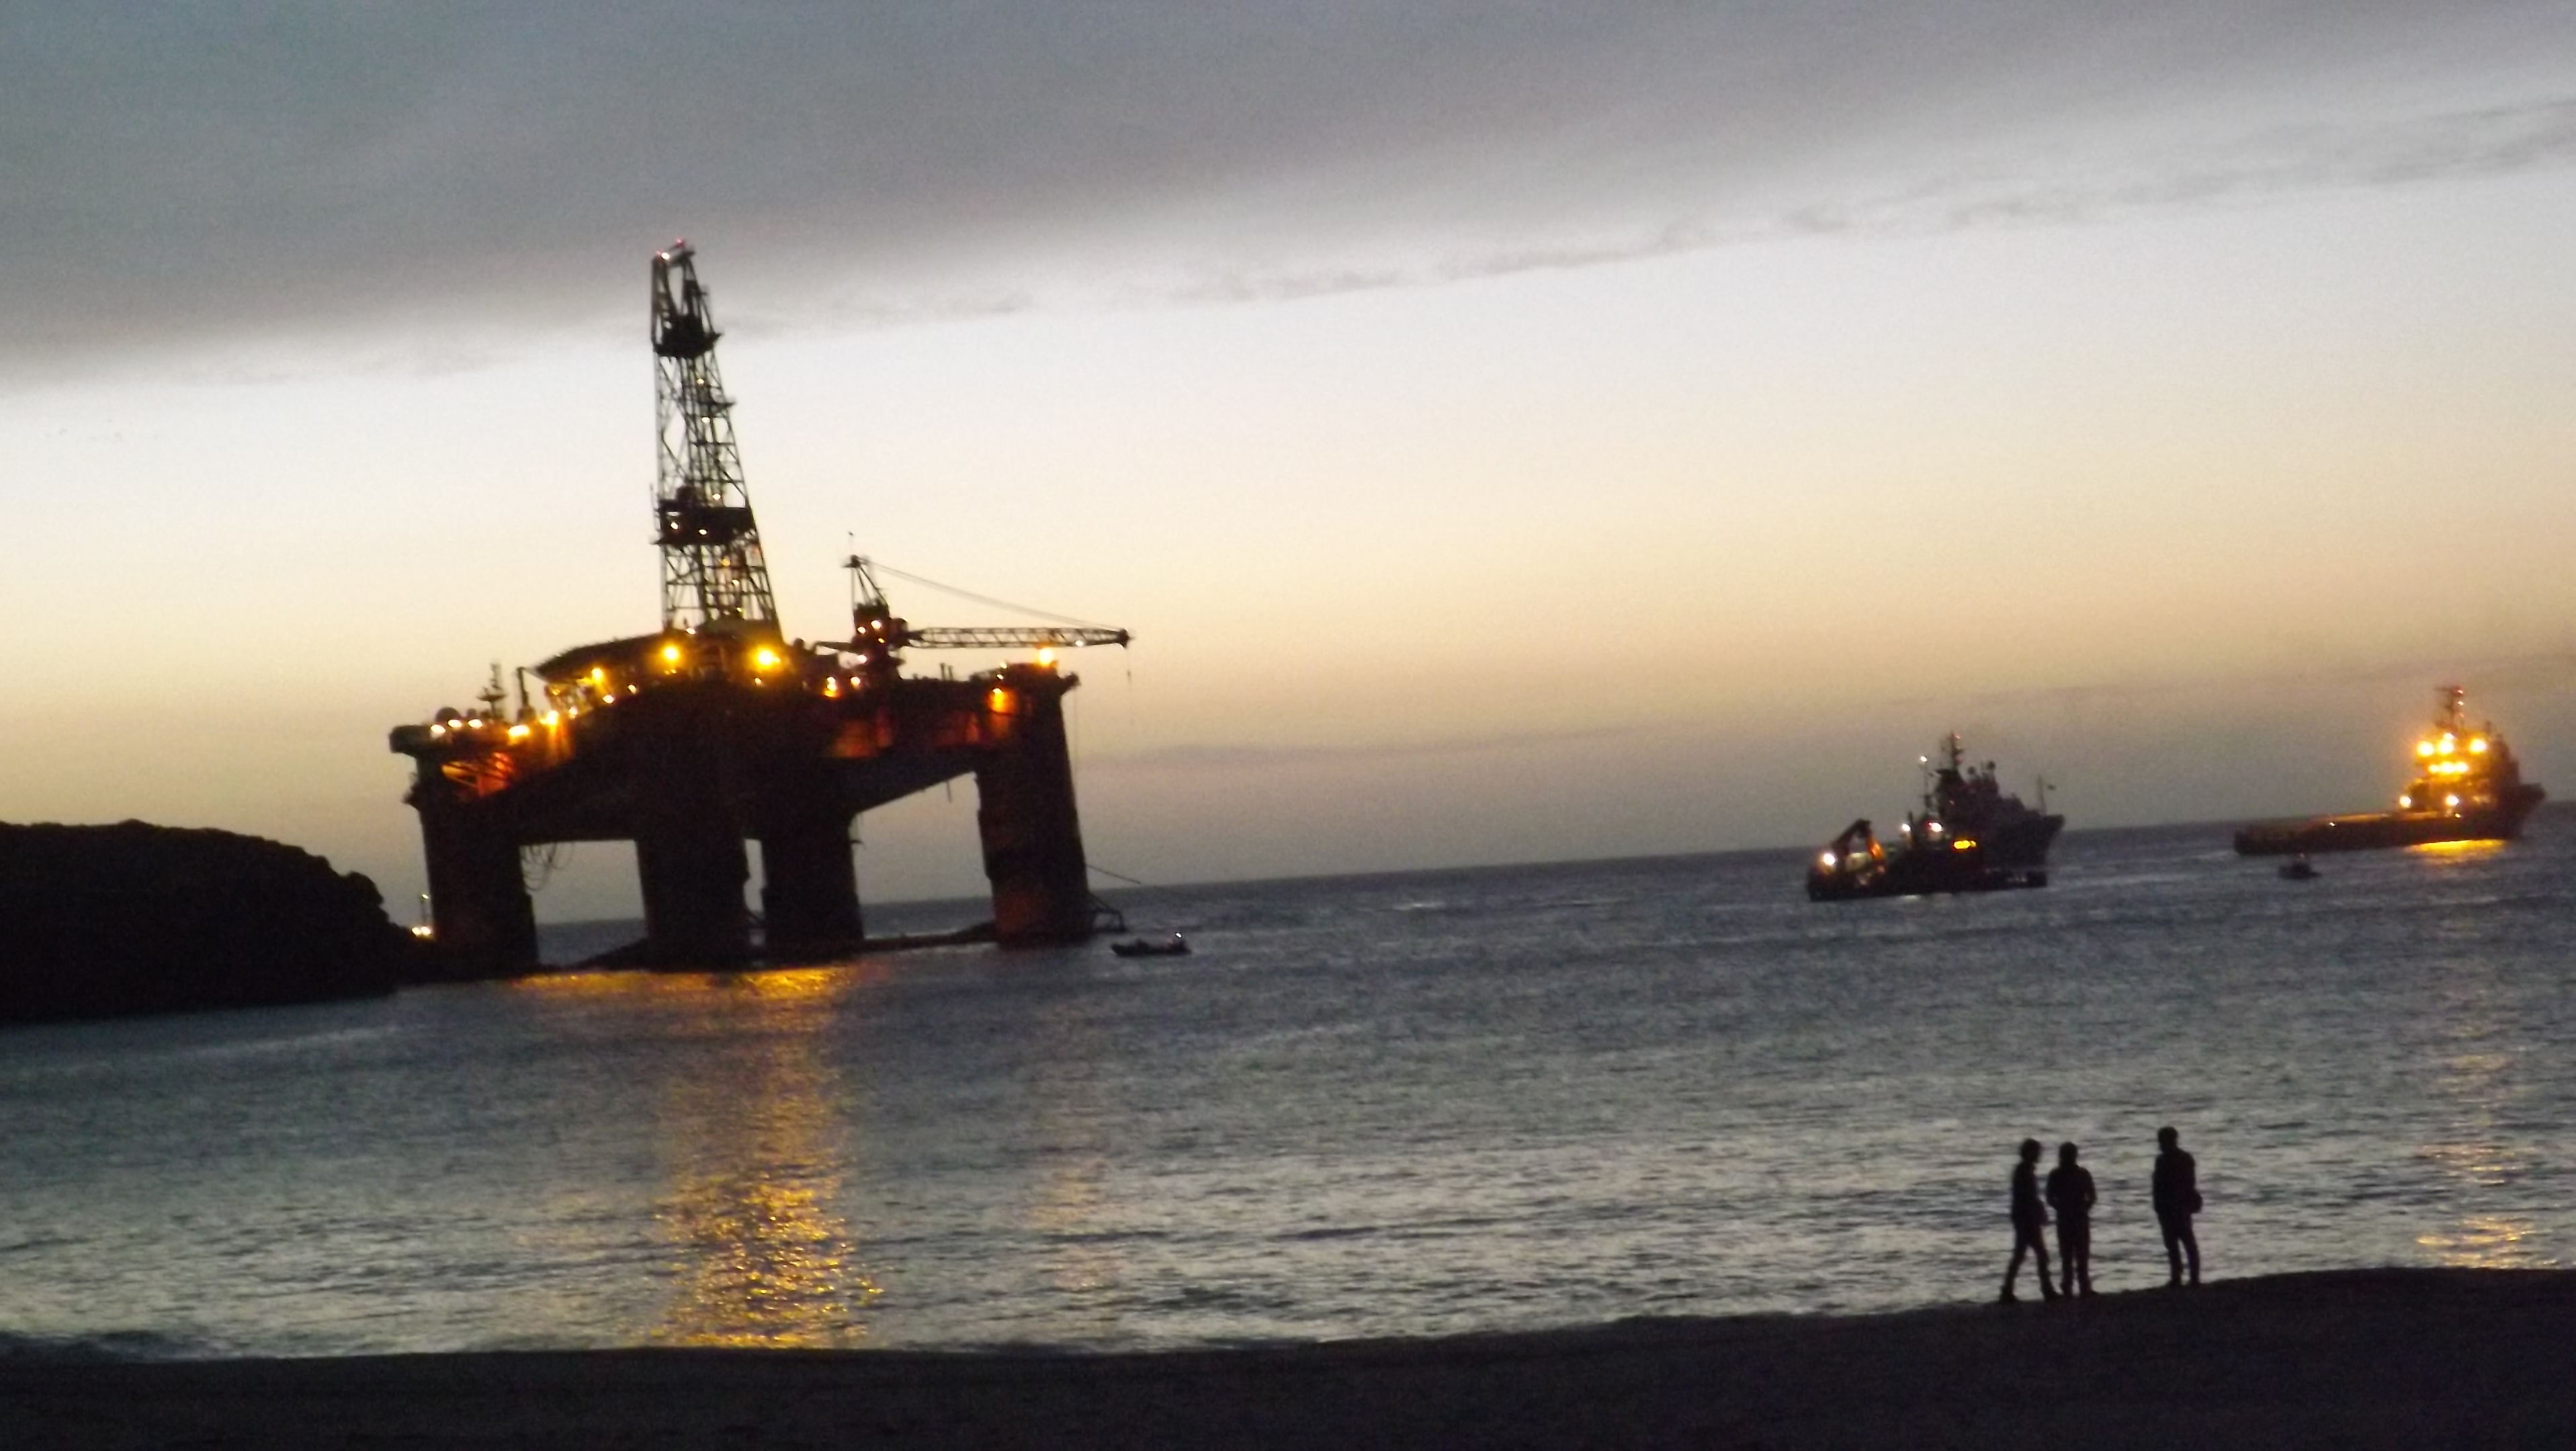 The Transocean Winner at the start of its refloat operation.